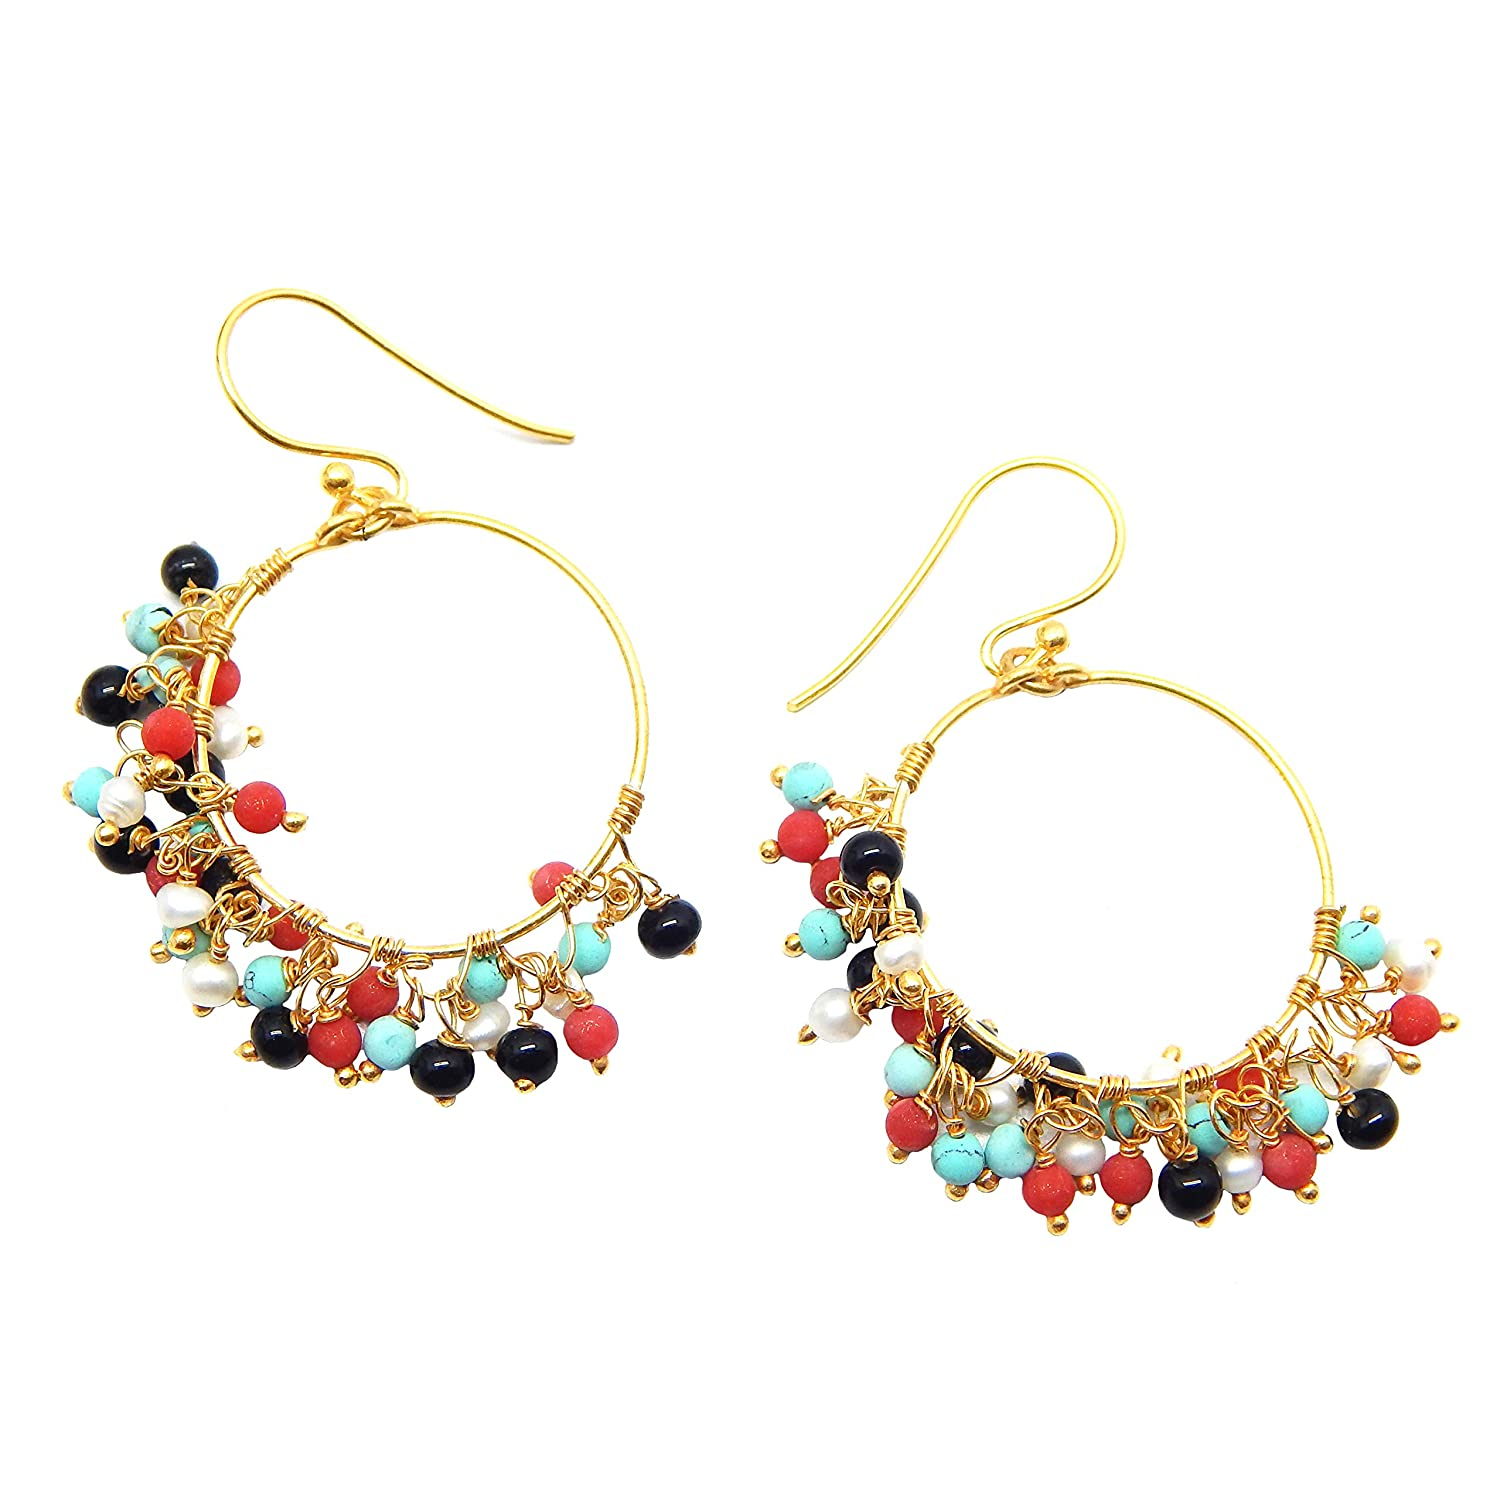 The V Collection earrings 22k yellow gold plated multi gemstone beads dangling earrings for her